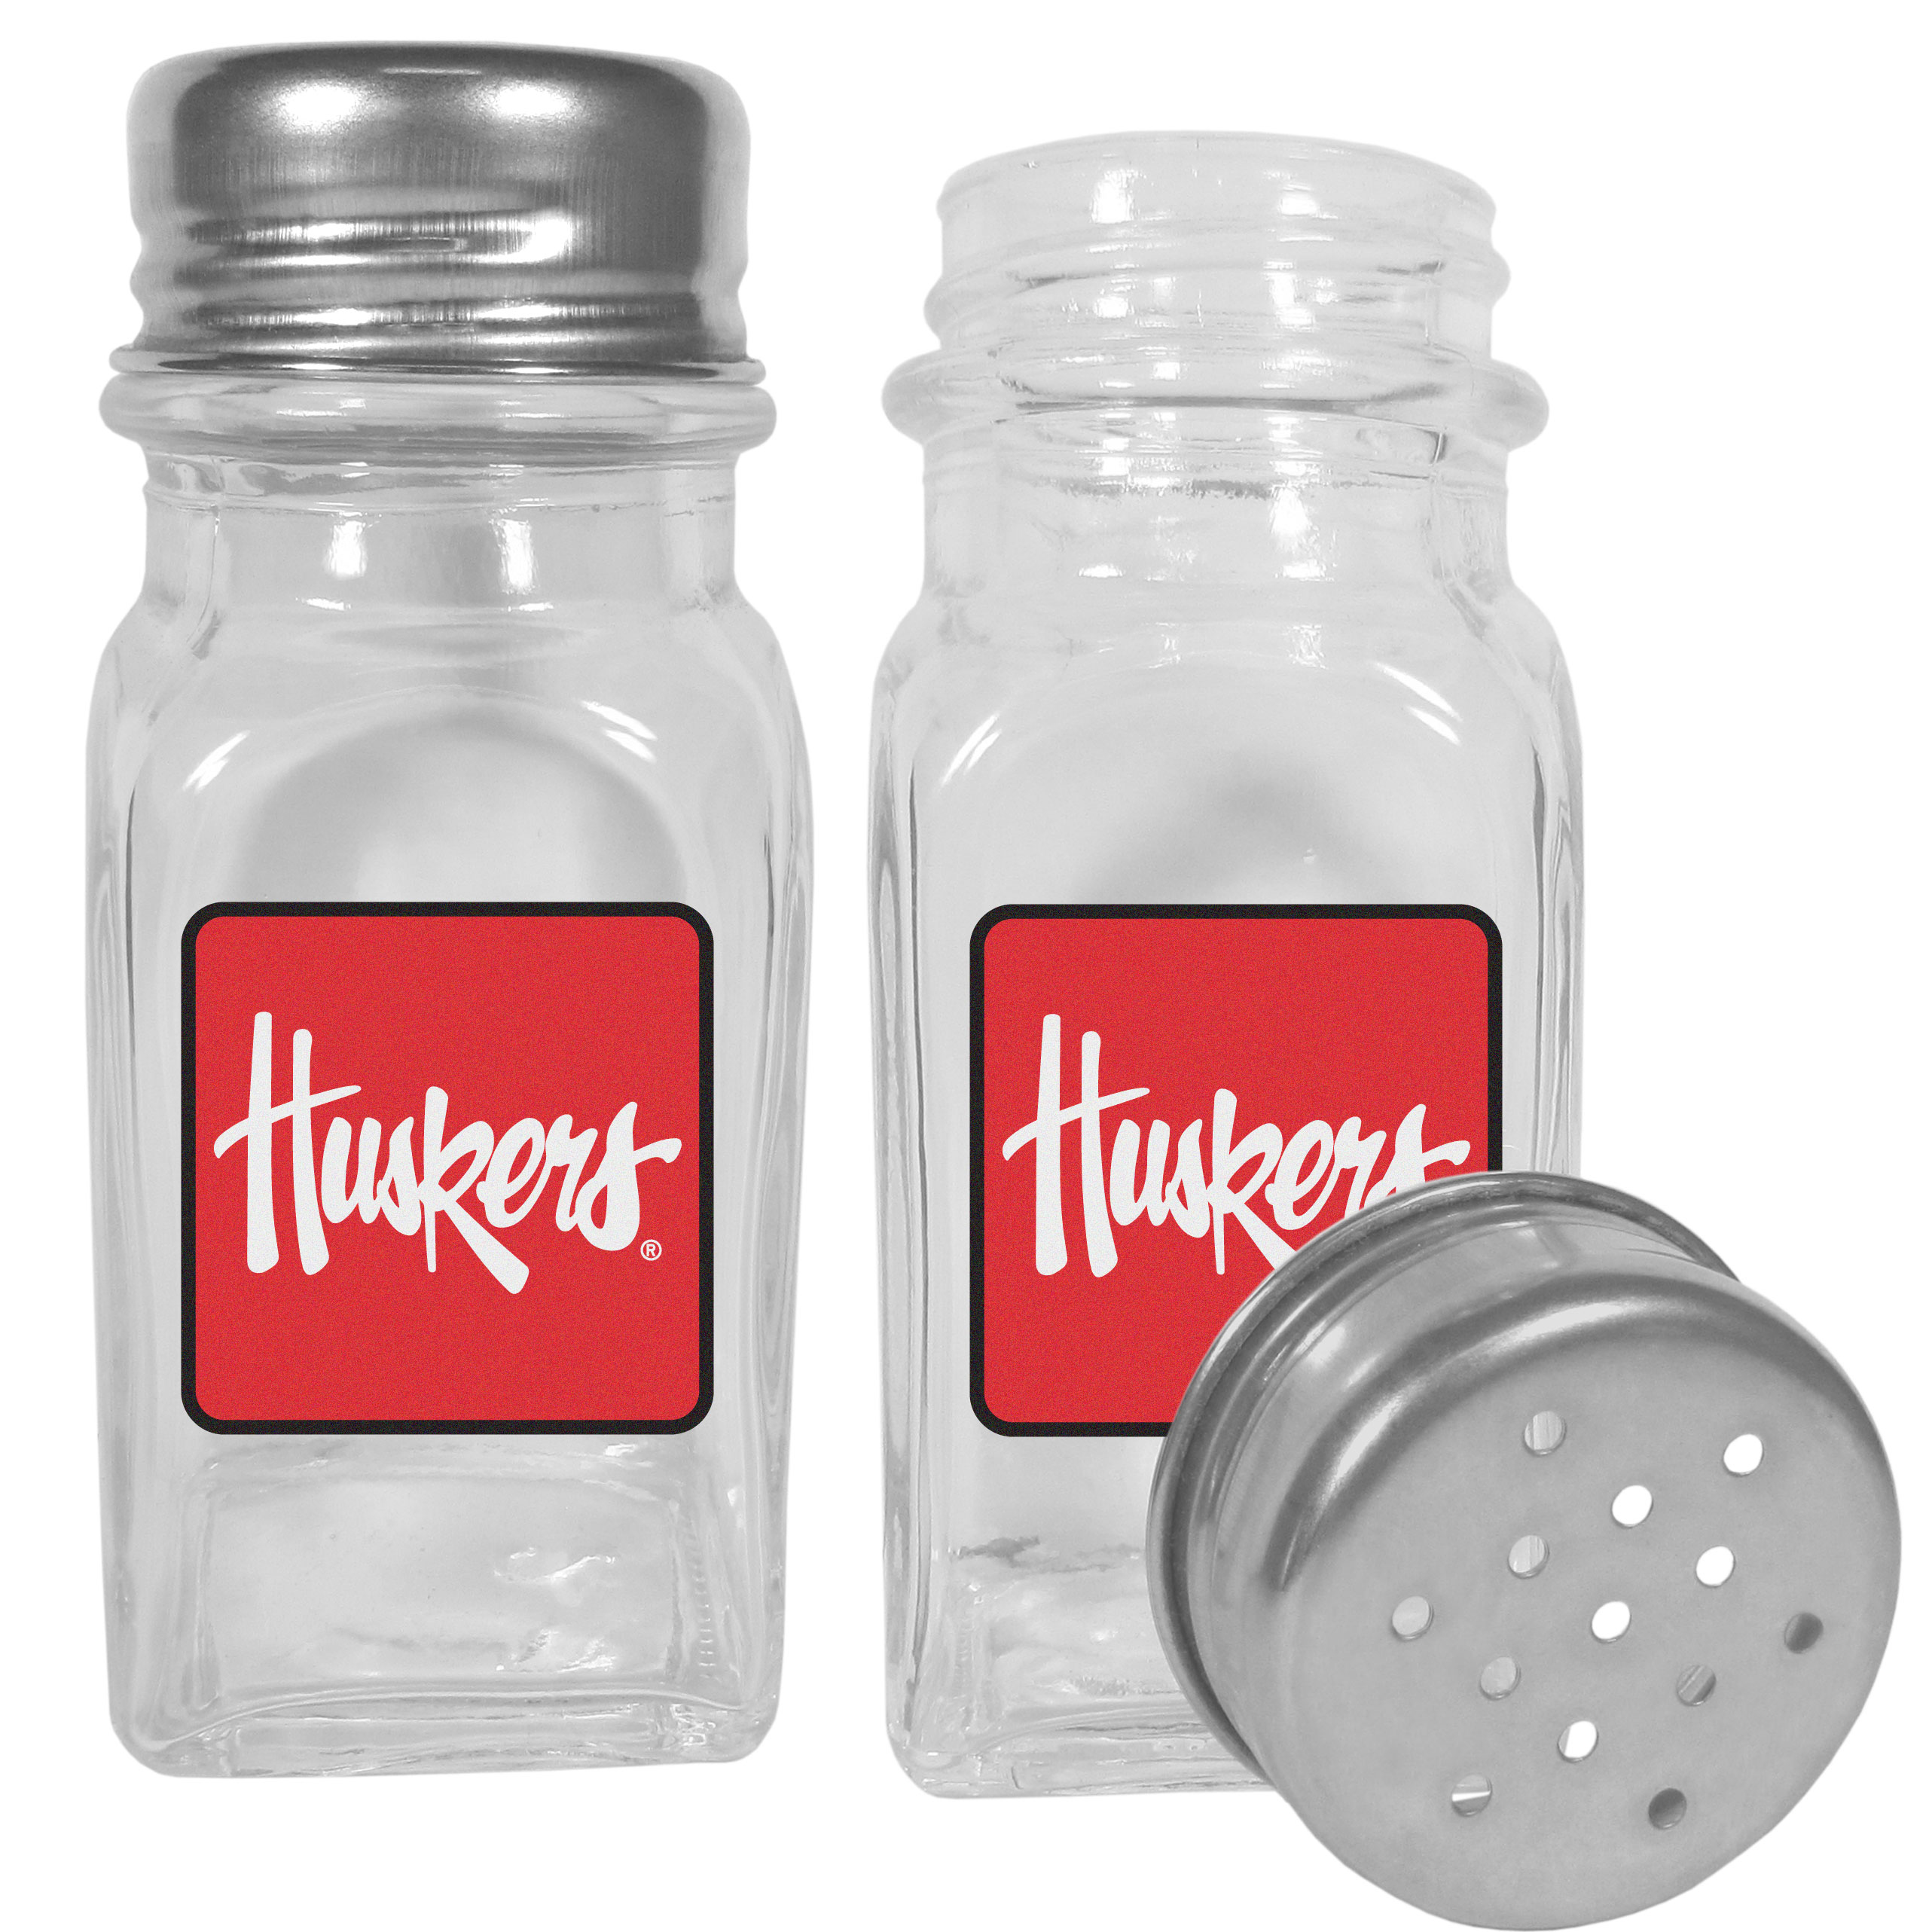 Nebraska Cornhuskers Graphics Salt & Pepper Shaker - No tailgate party is complete without your Nebraska Cornhuskers salt & pepper shakers featuring bright team logos. The diner replica salt and pepper shakers are glass with screw top lids. These team shakers are a great grill accessory whether you are barbecuing on the patio, picnicing or having a game day party.